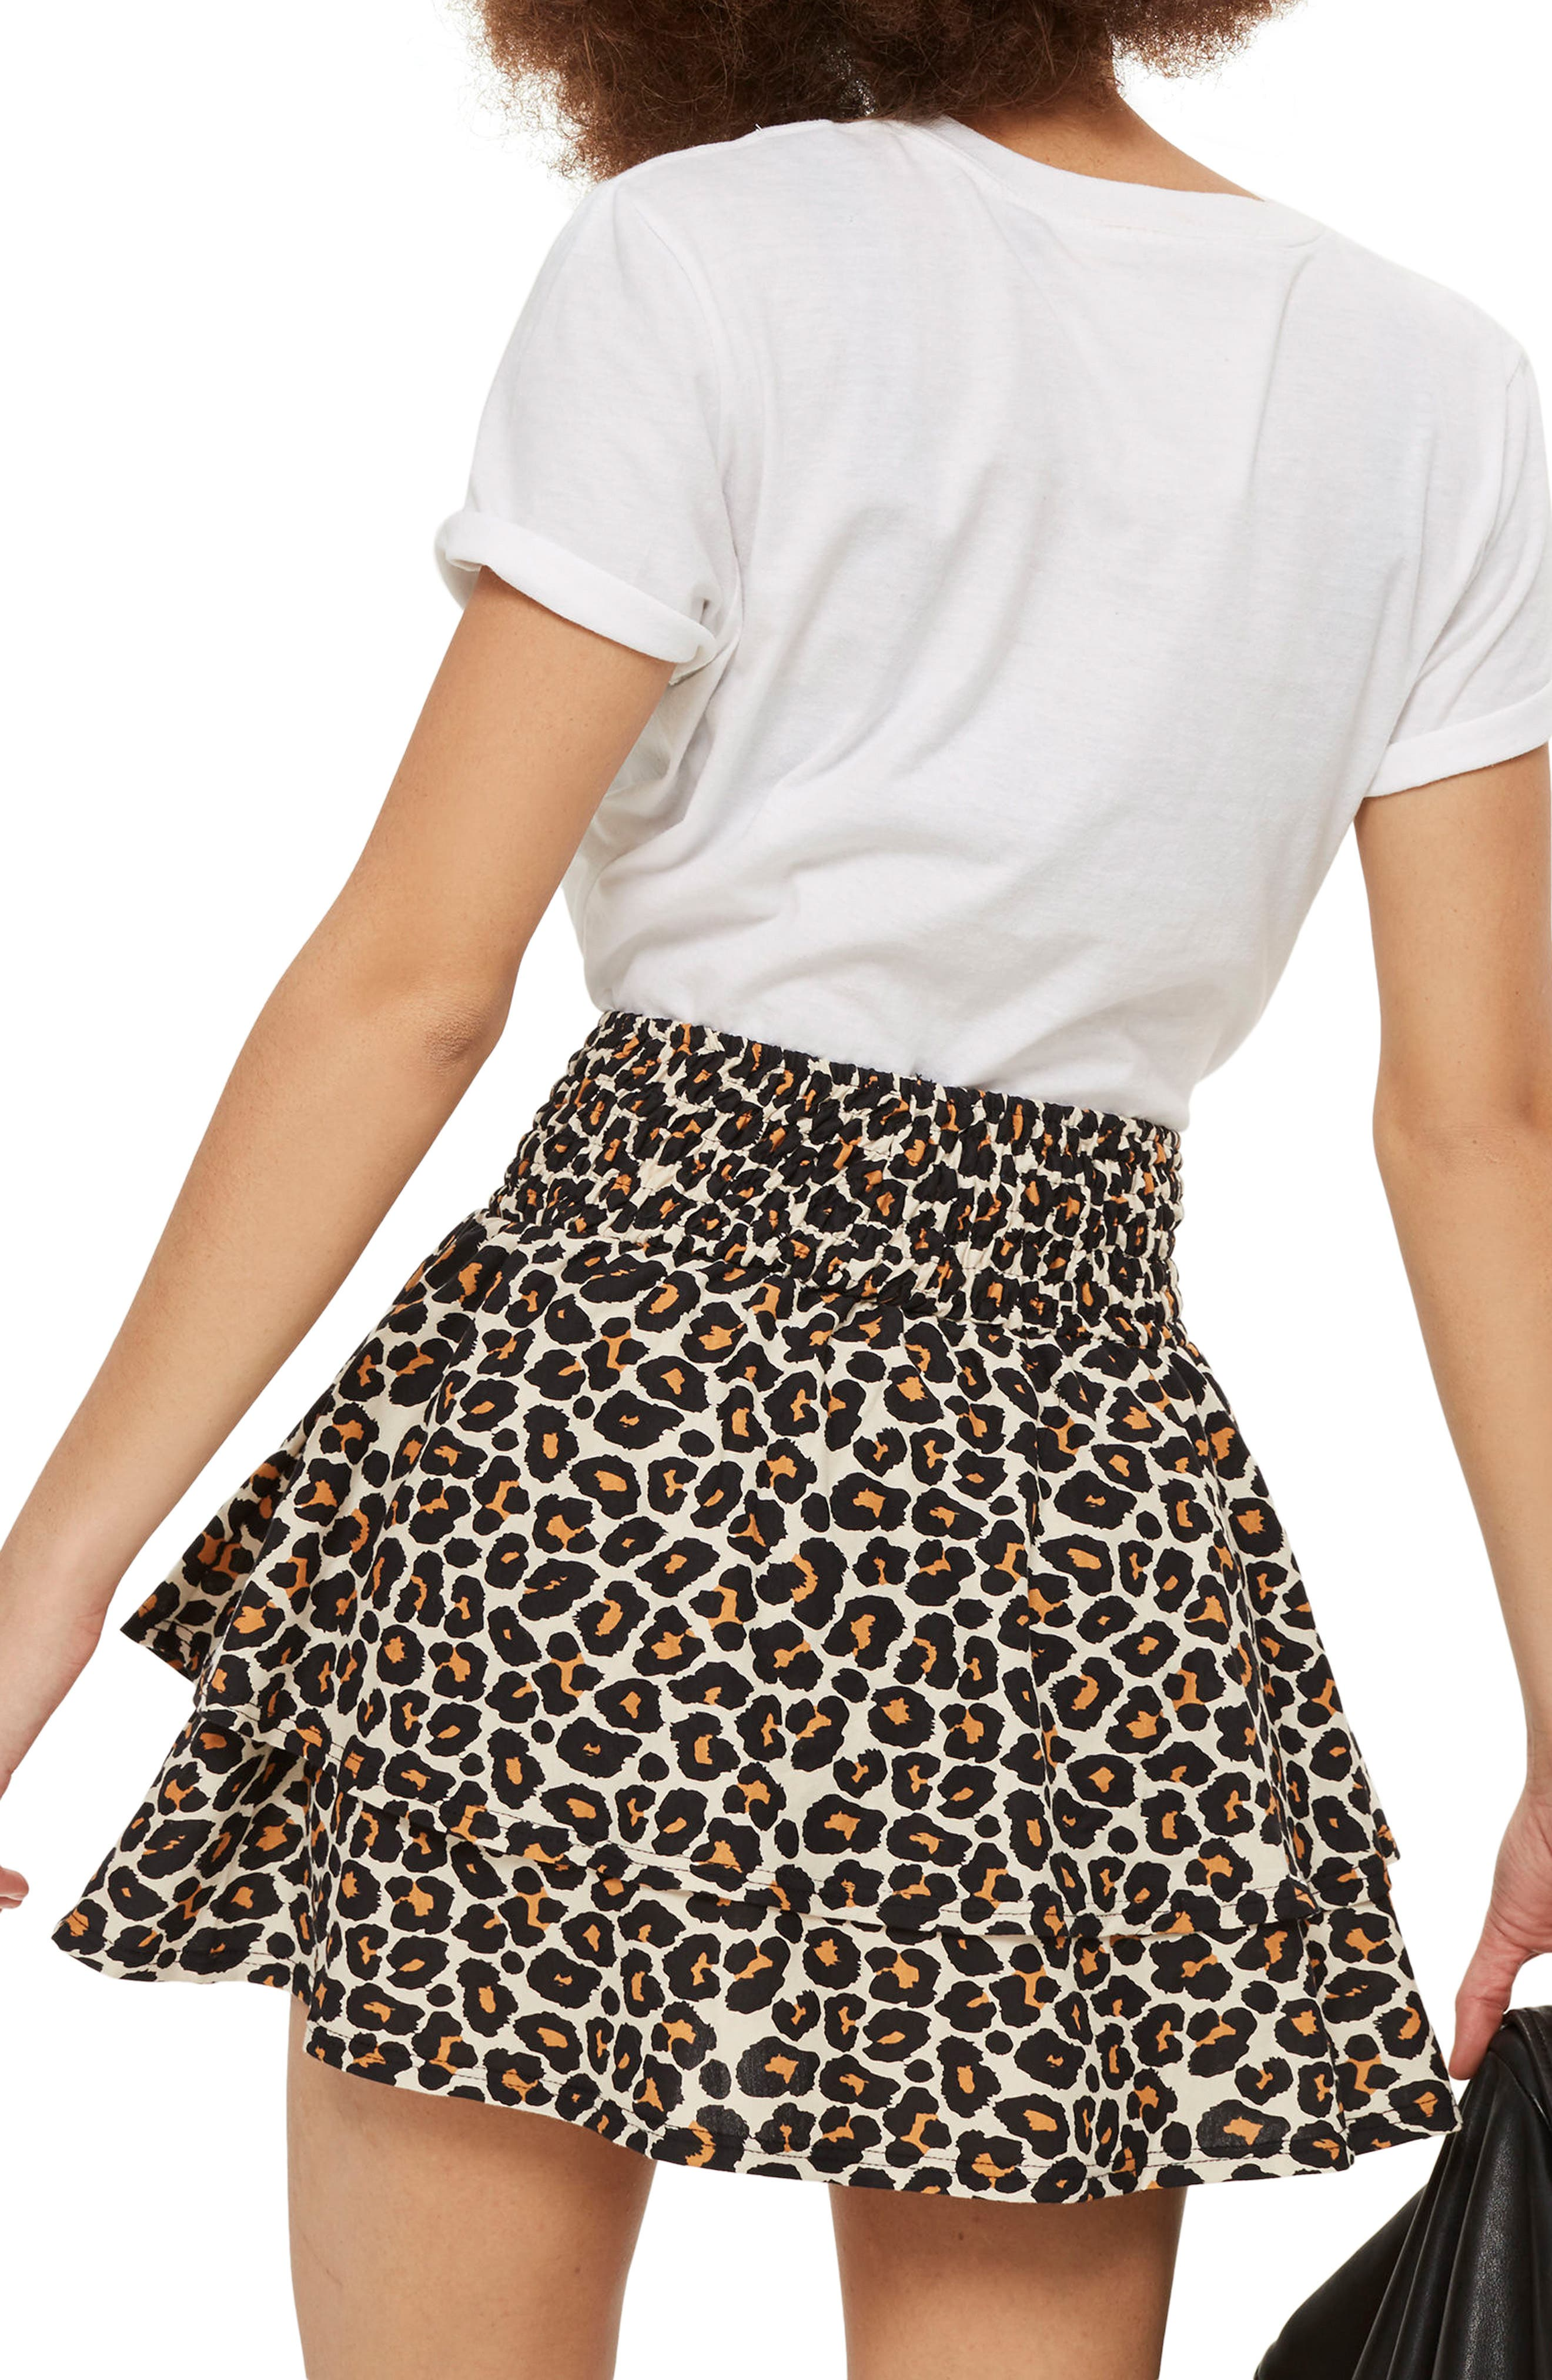 Tiered Leopard Skirt,                             Alternate thumbnail 2, color,